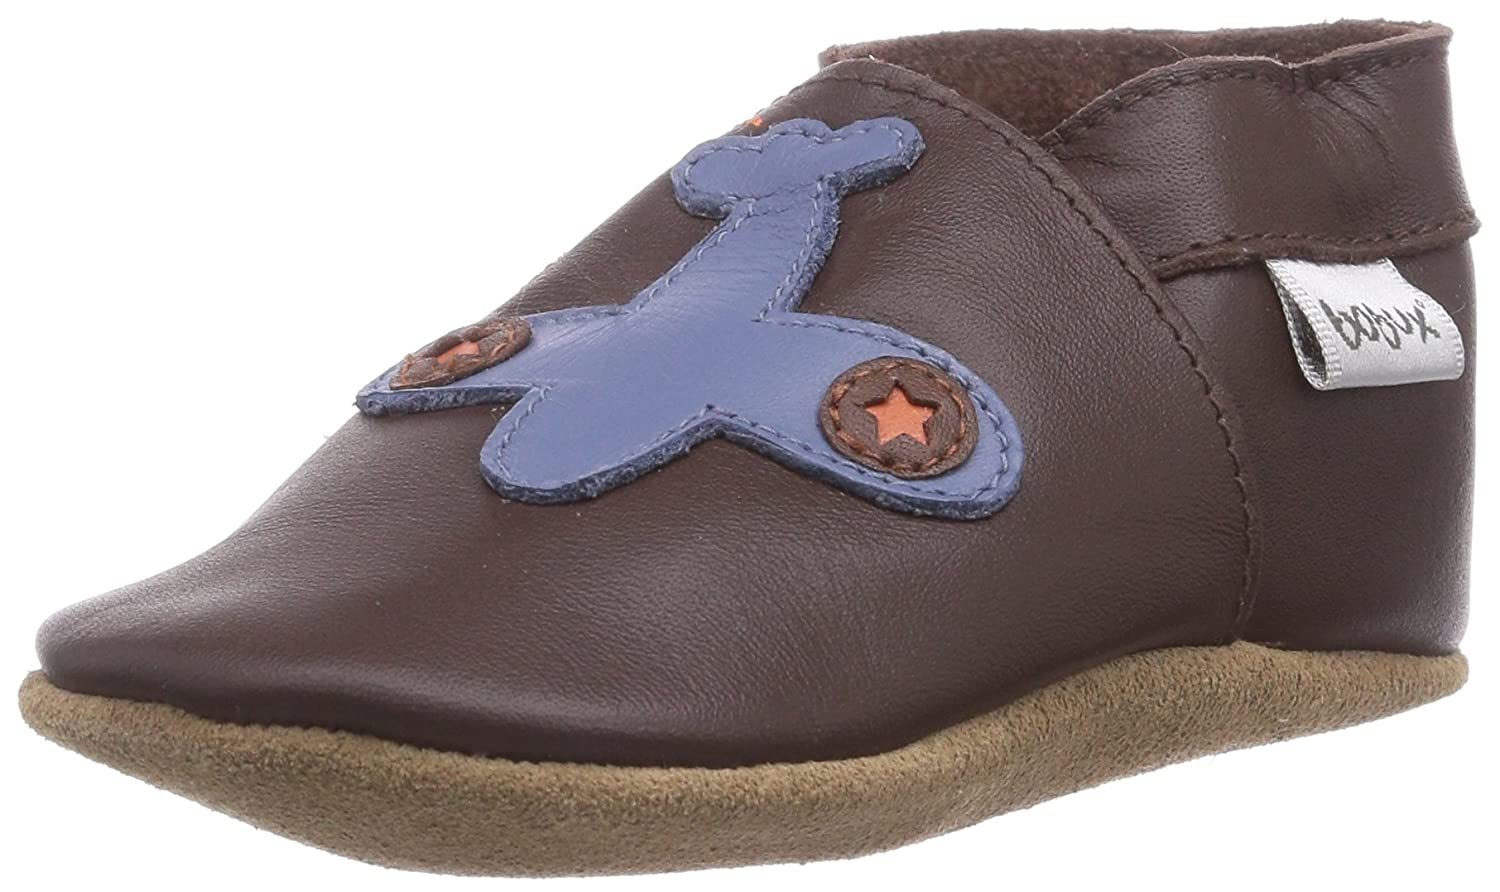 Bobux Unisex Babies' 460789 First Shoes - House Shoes